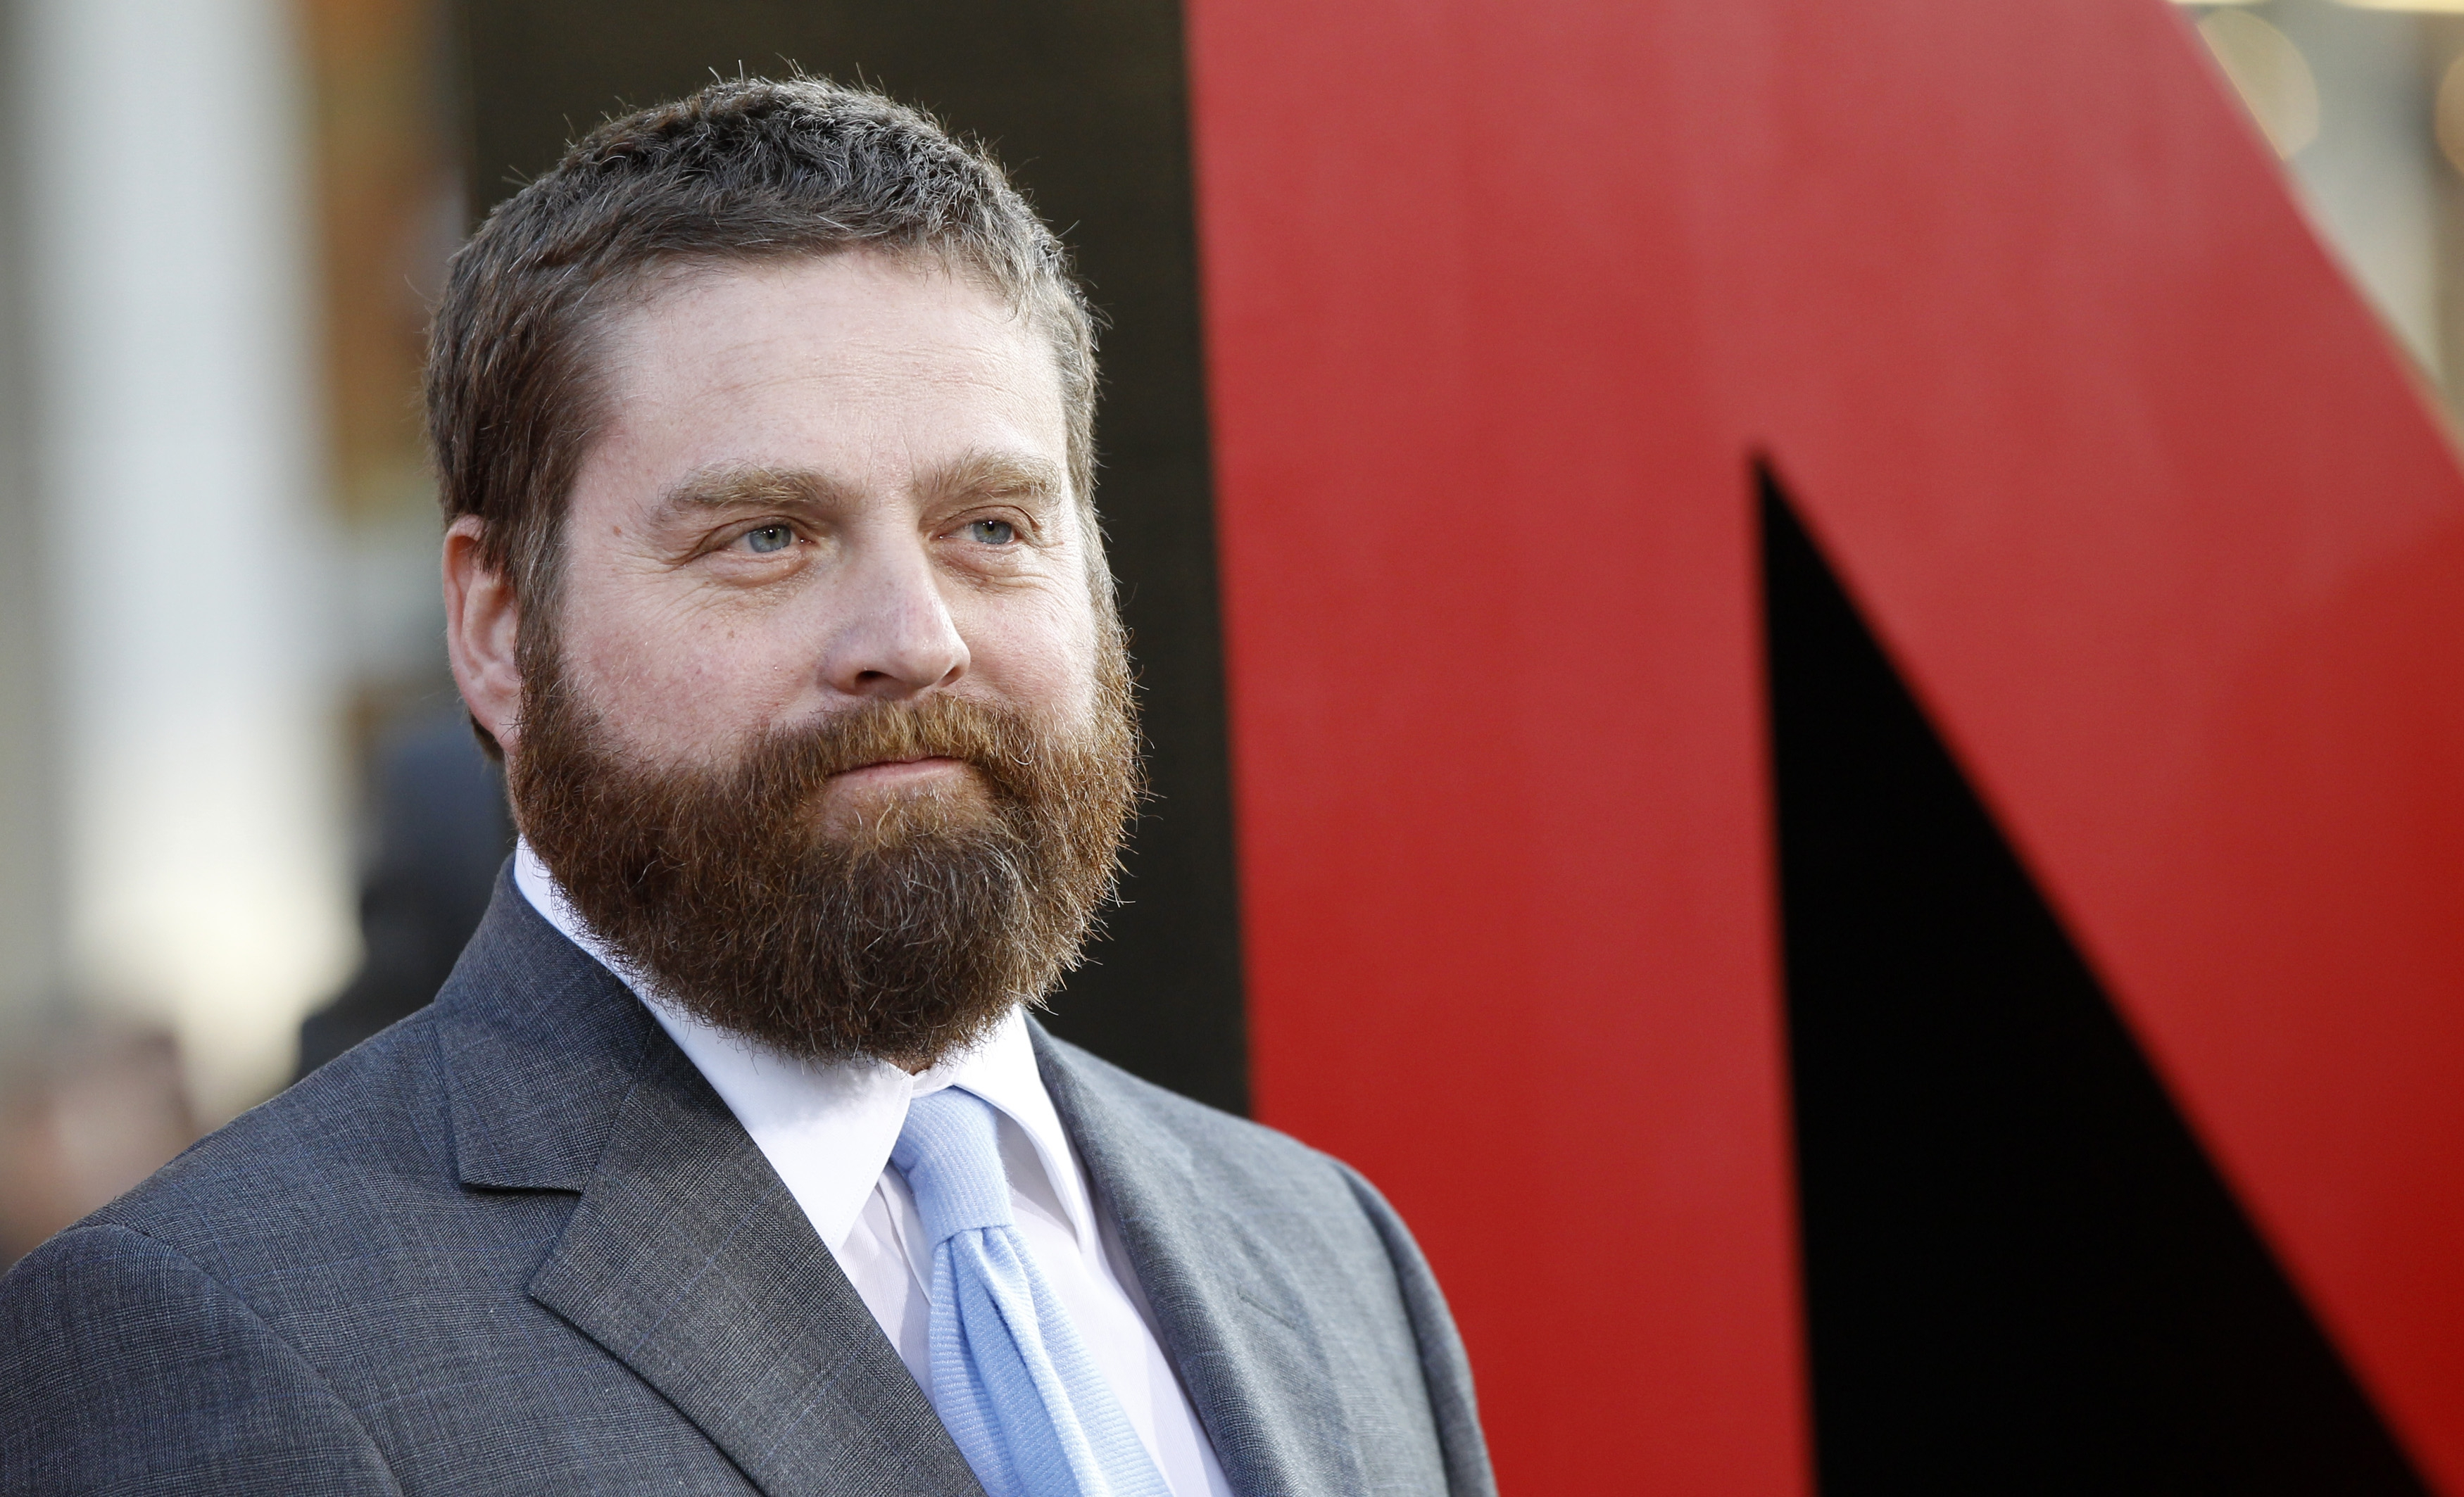 zach galifianakis celebrity wide wallpaper 59417